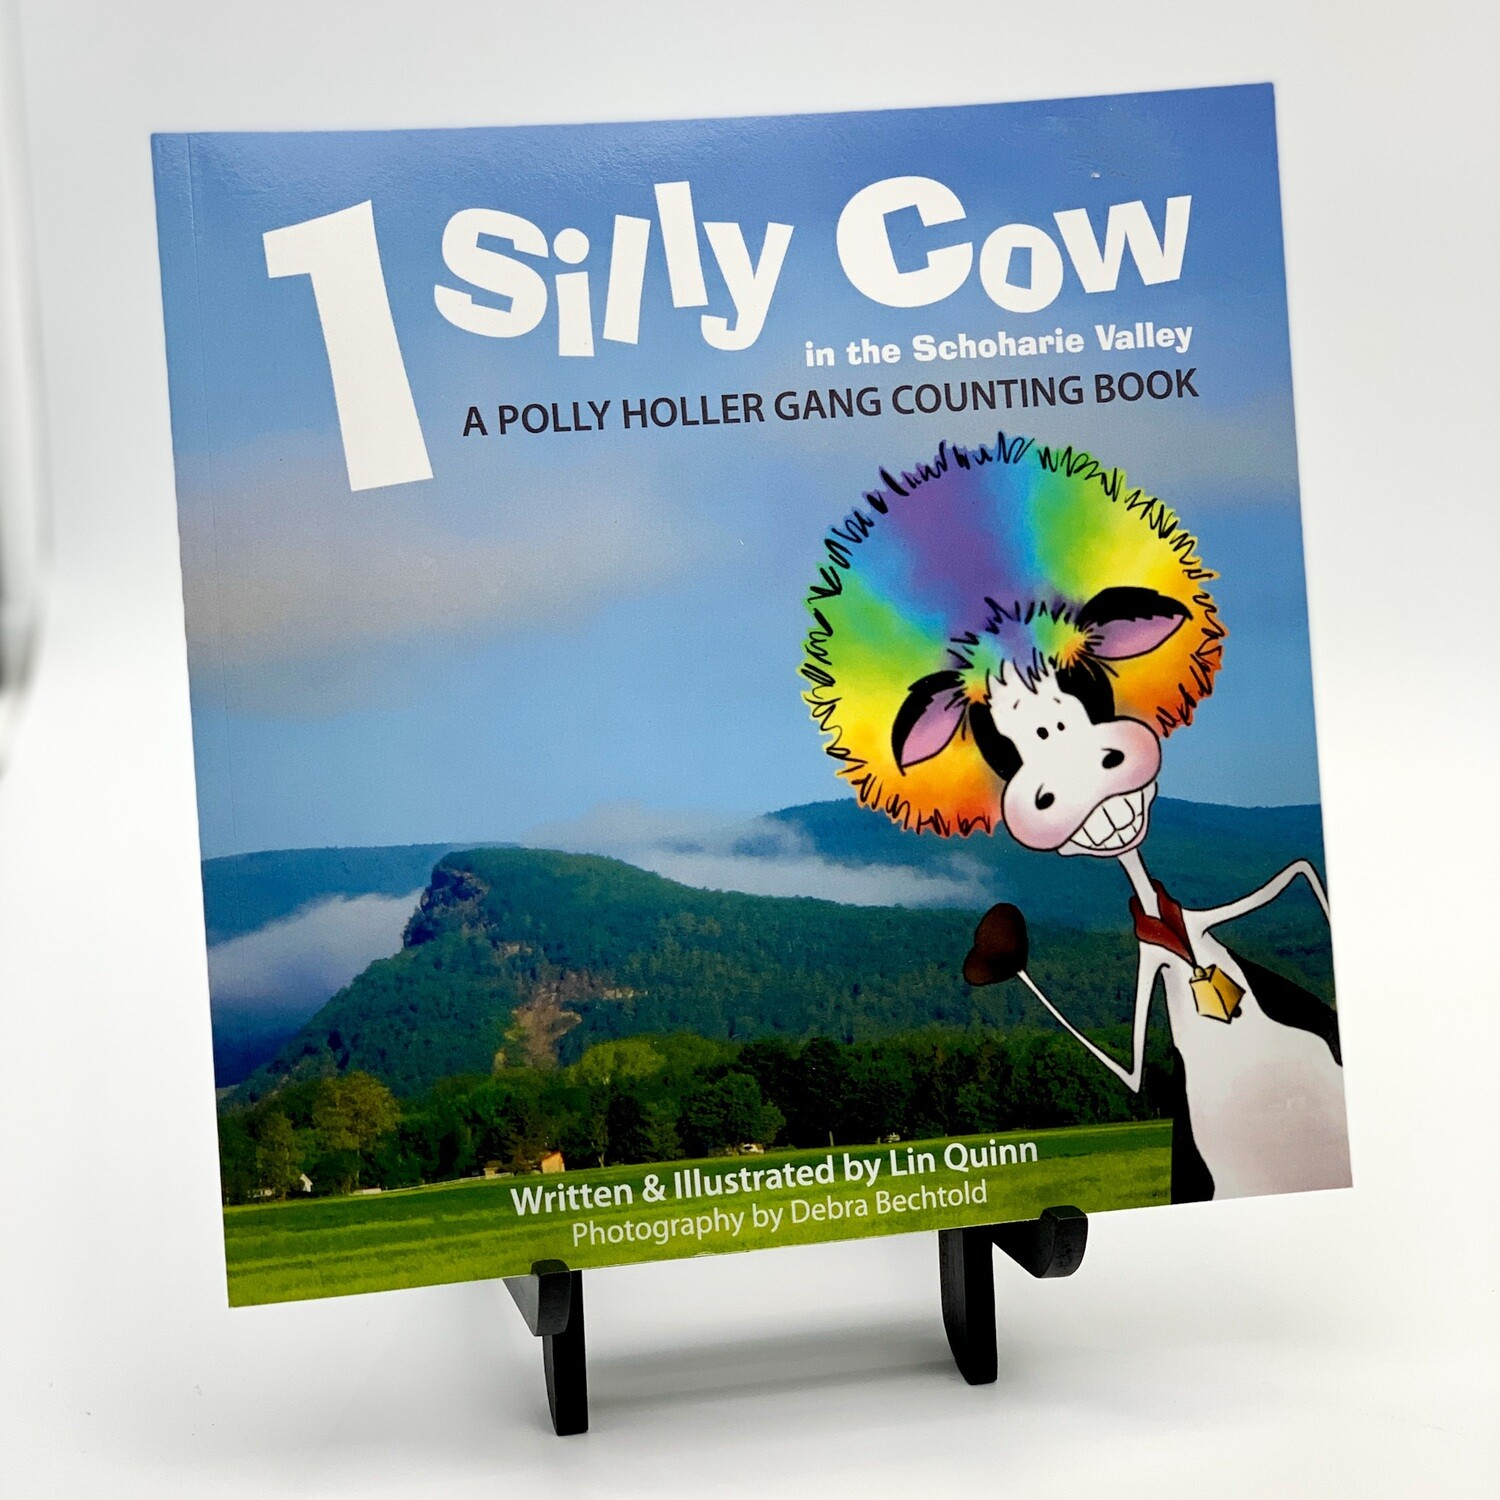 1 Silly Cow in the Schoharie Valley